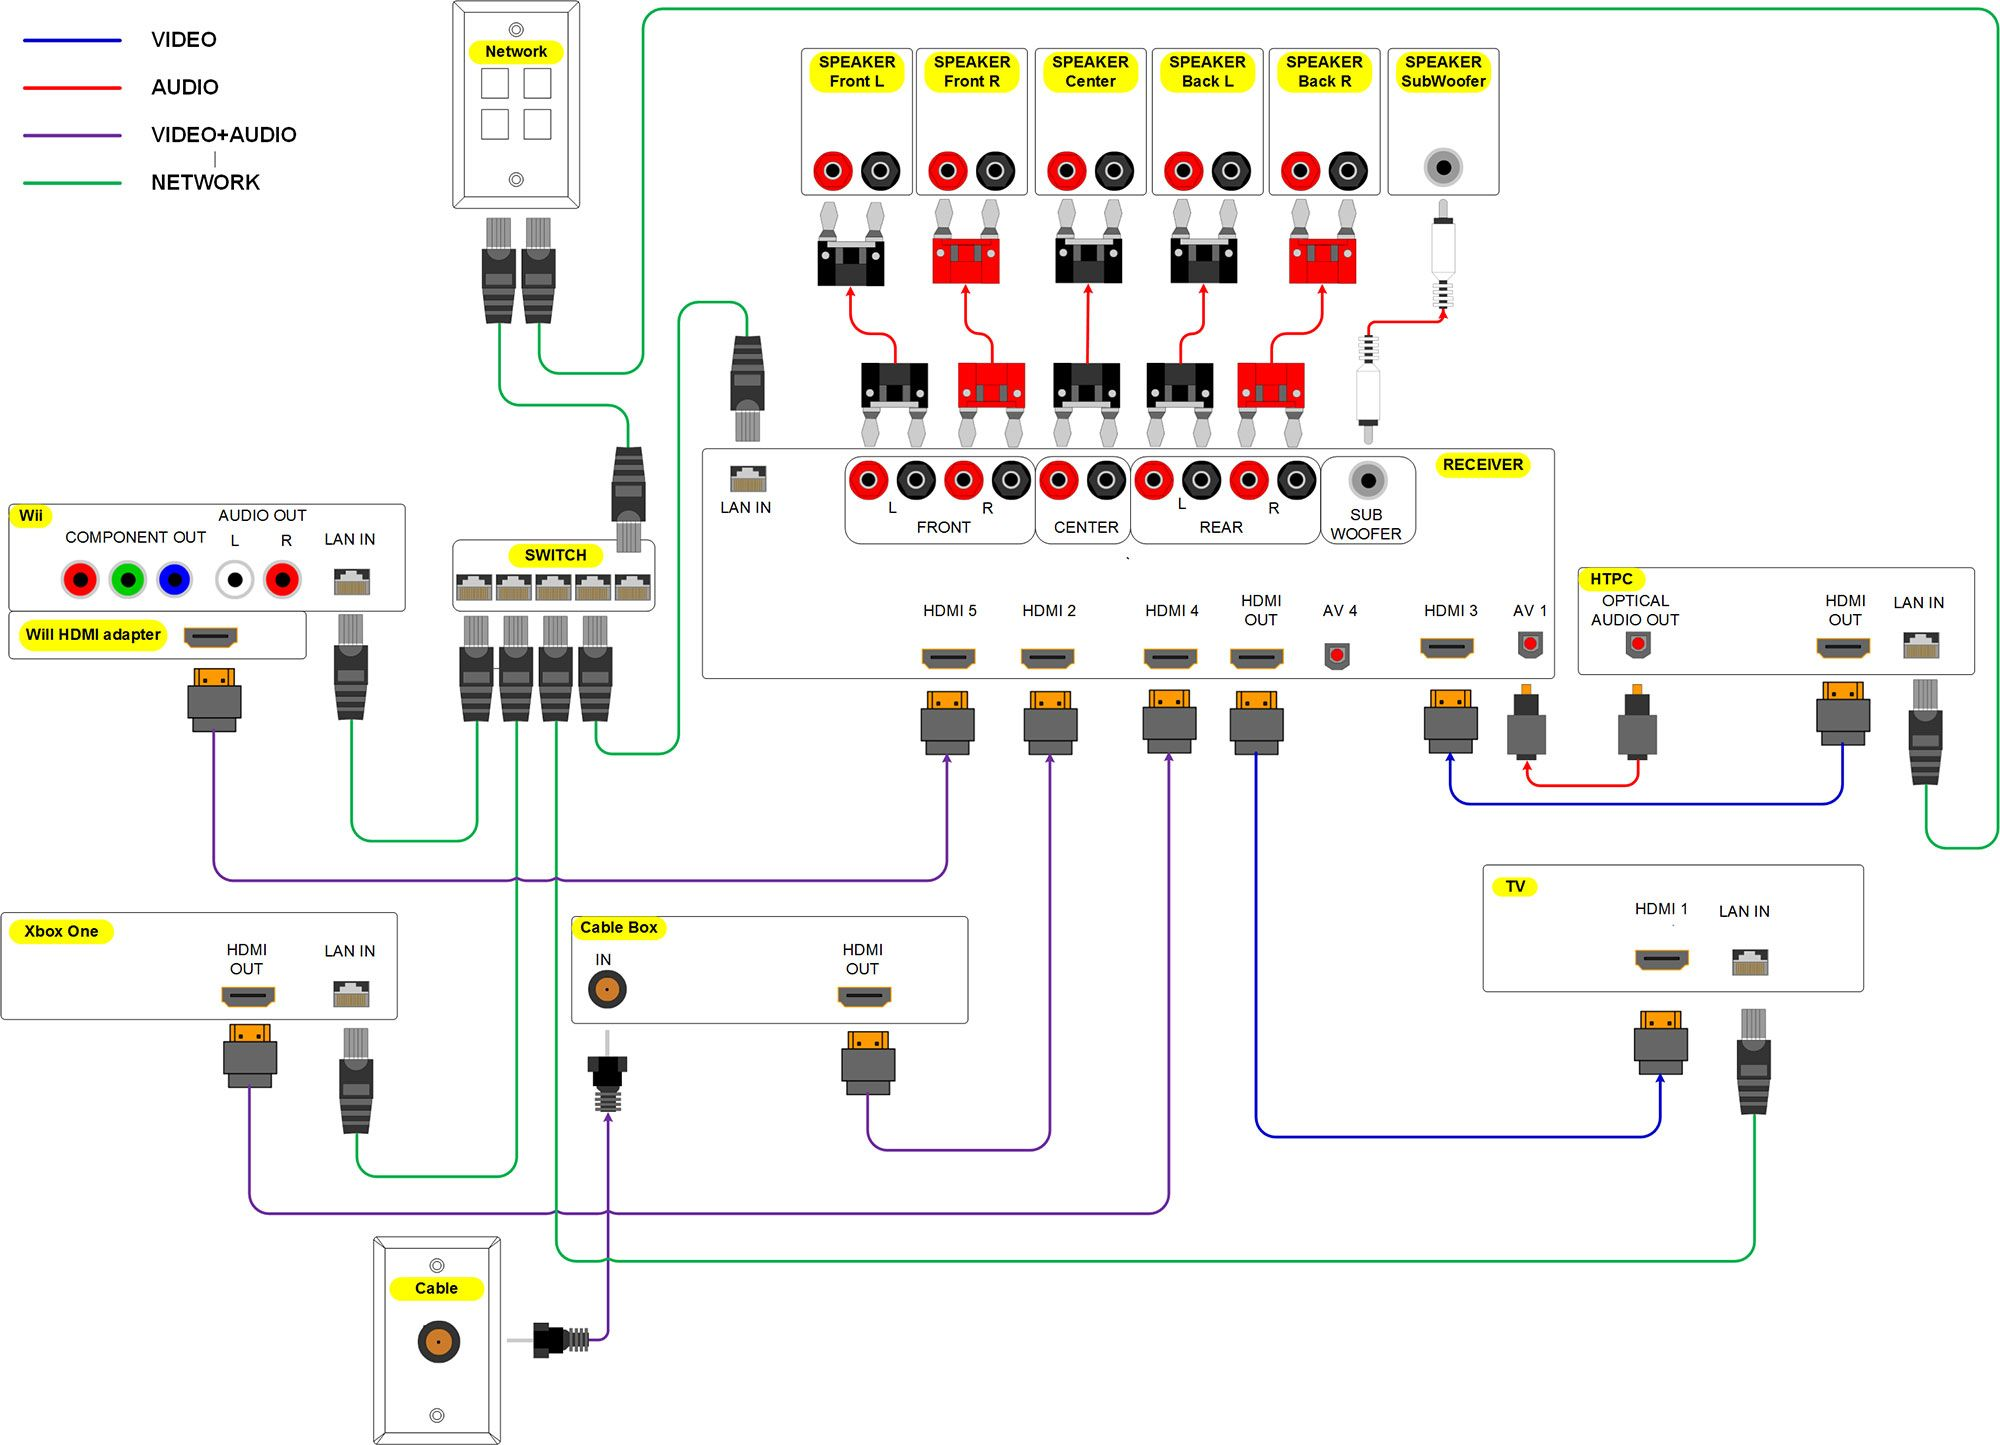 hight resolution of home theater wiring diagram click it to see the big 2000 pixel wide 2000 mustang stereo wiring home stereo wiring